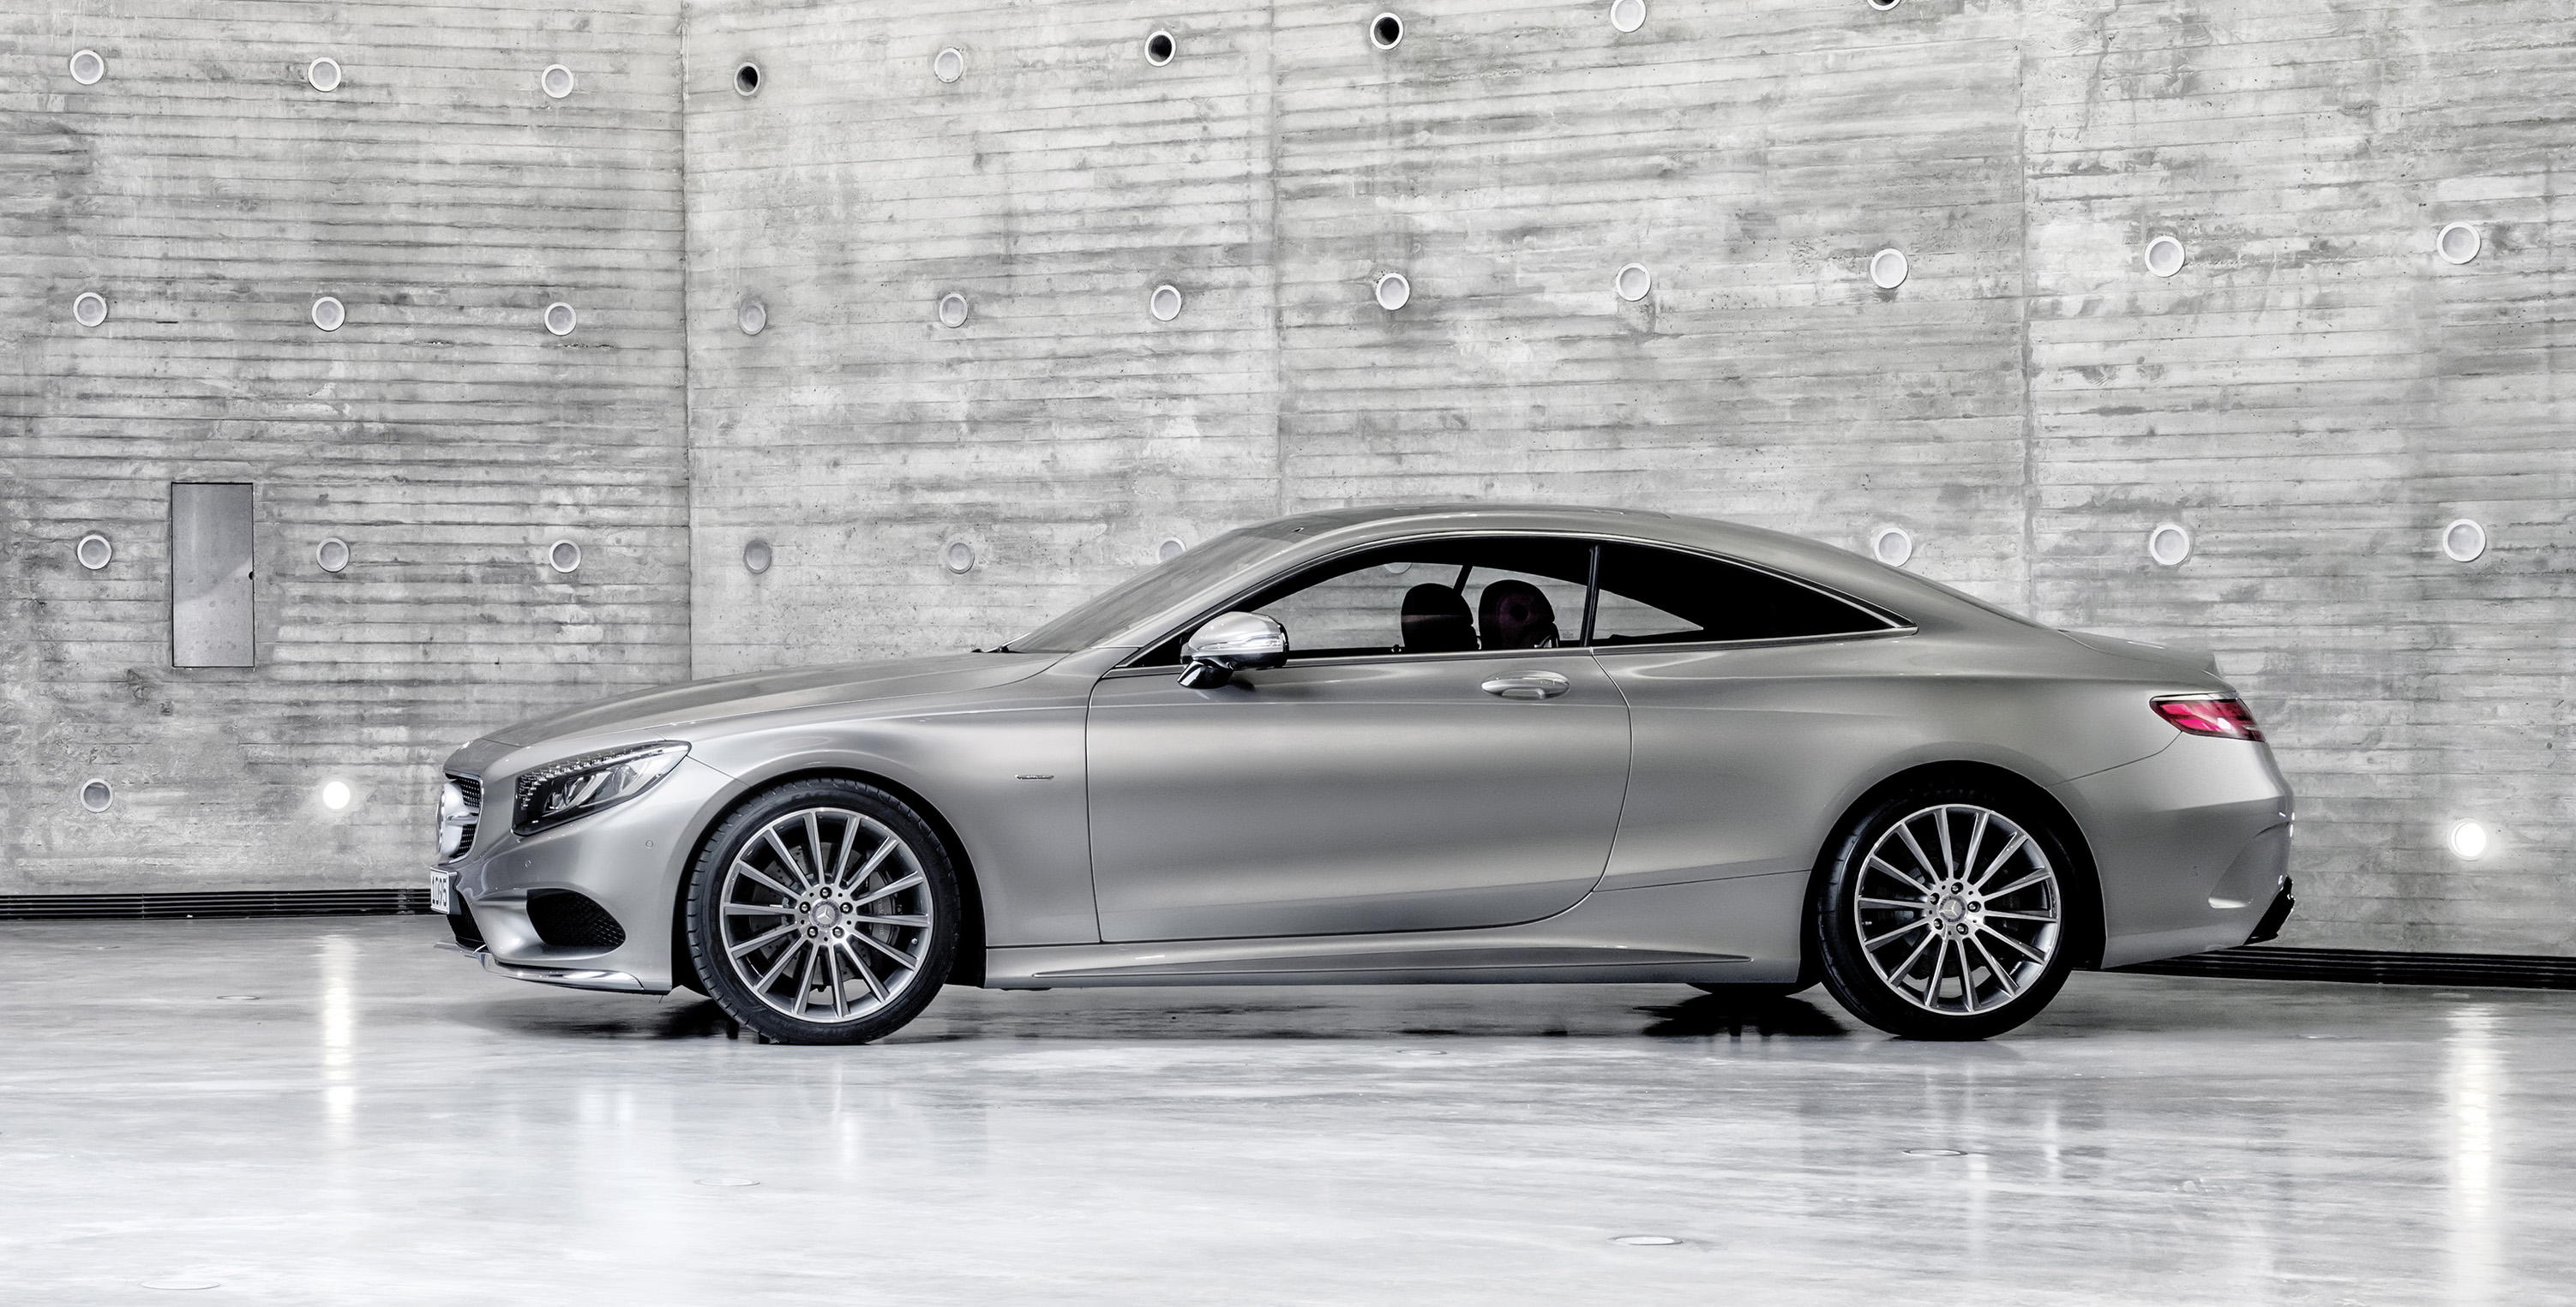 mercedes benz s class coupe crystal clear details image. Black Bedroom Furniture Sets. Home Design Ideas